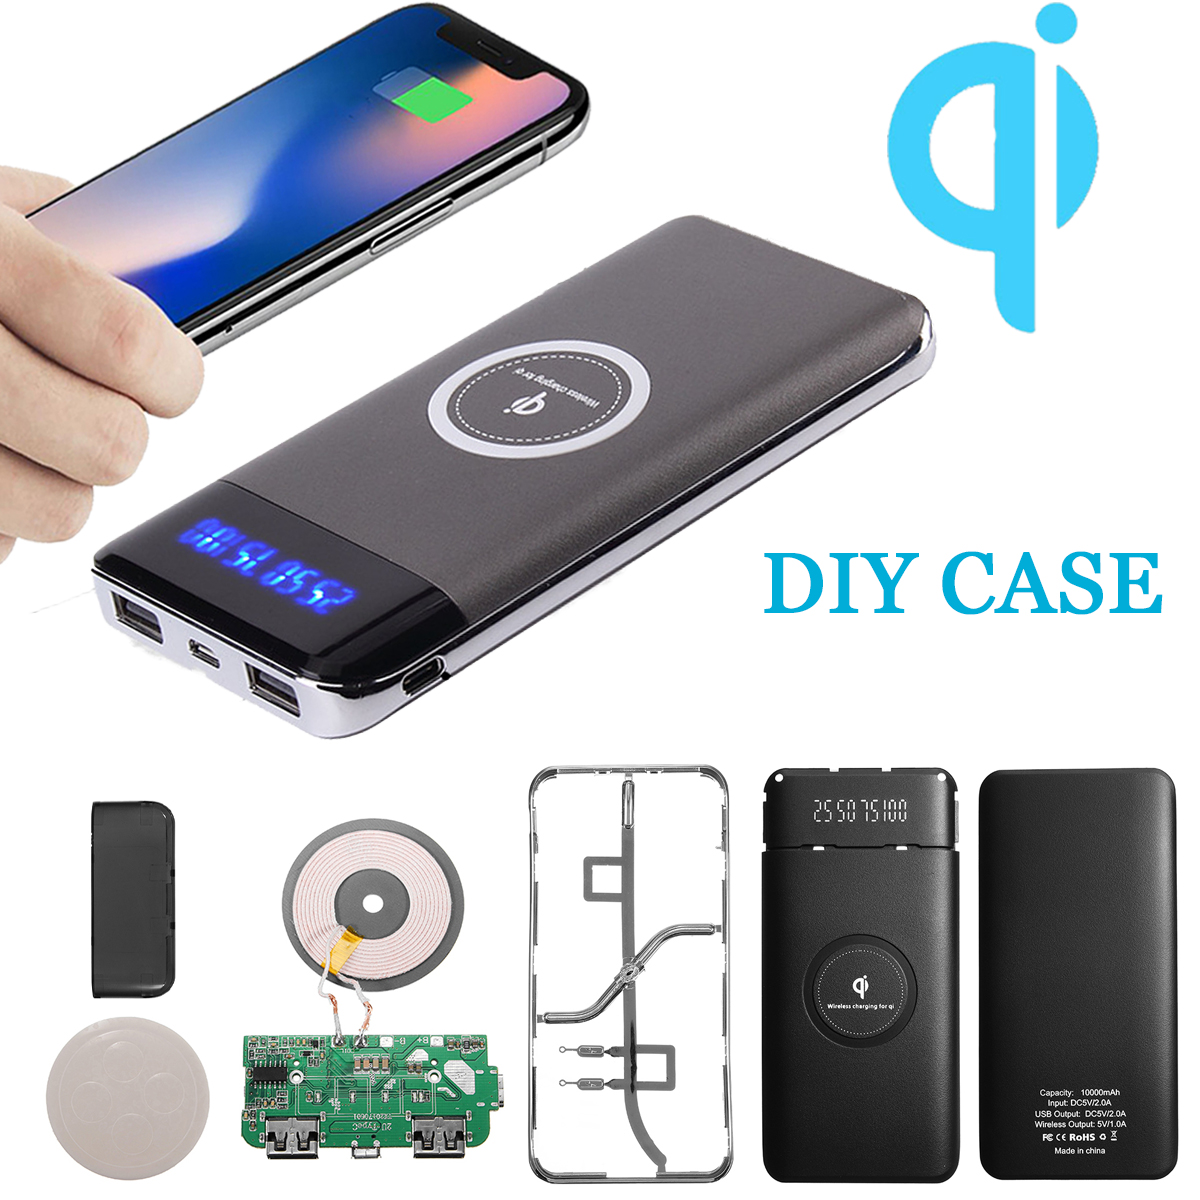 10000mAh Qi Charger LED Power Bank DIY Case Wireless Charging USB for Samsung Galaxy Note 8 S9/S8/S8 Plus/S7 Edge/S7, for iPhone X 8 Plus 8